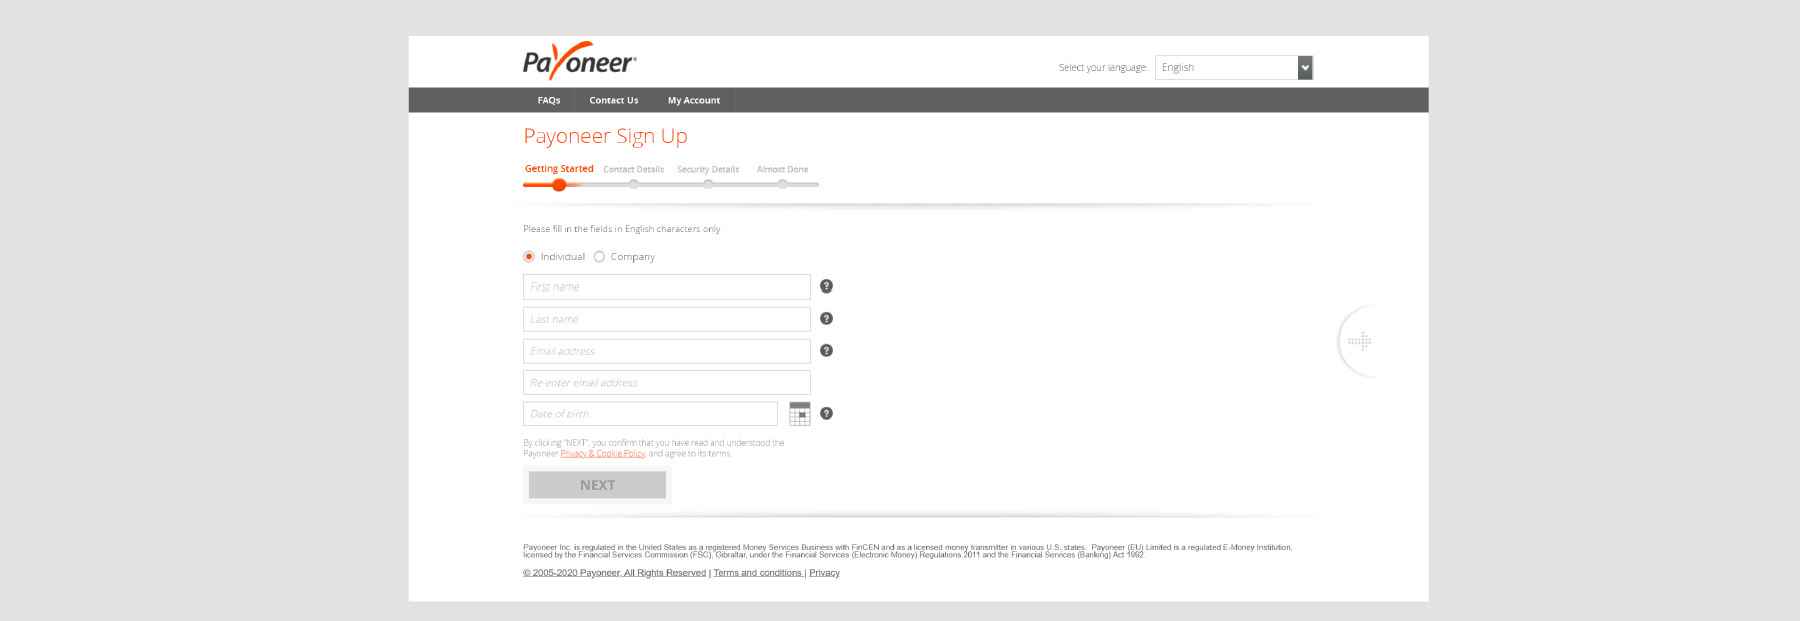 payoneer sign up step 4